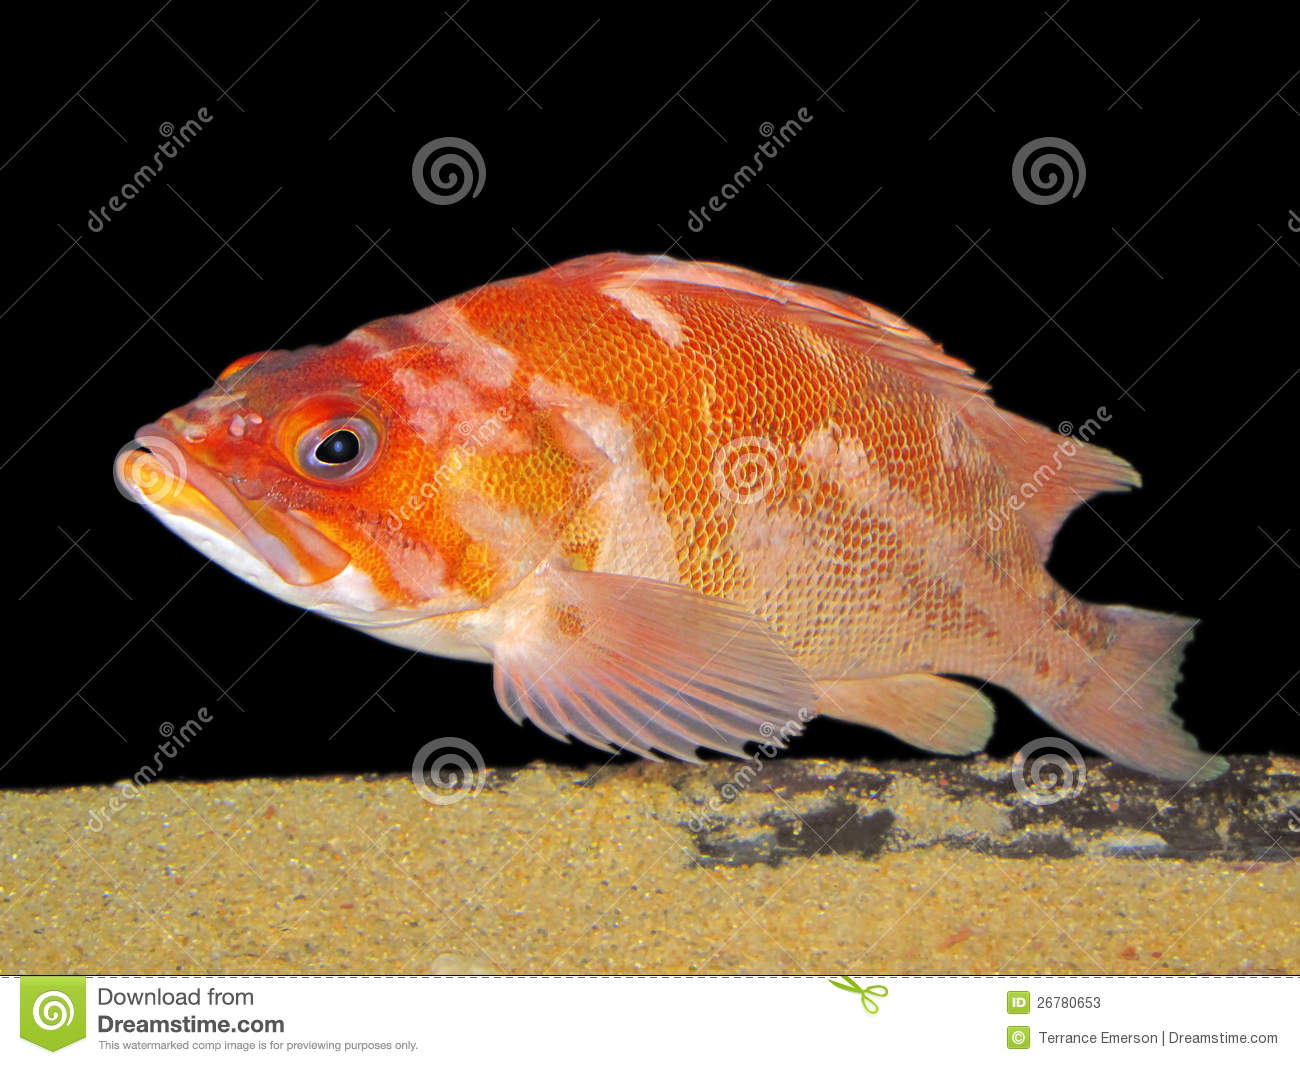 Red Snapper Stock Photos   Image  26780653